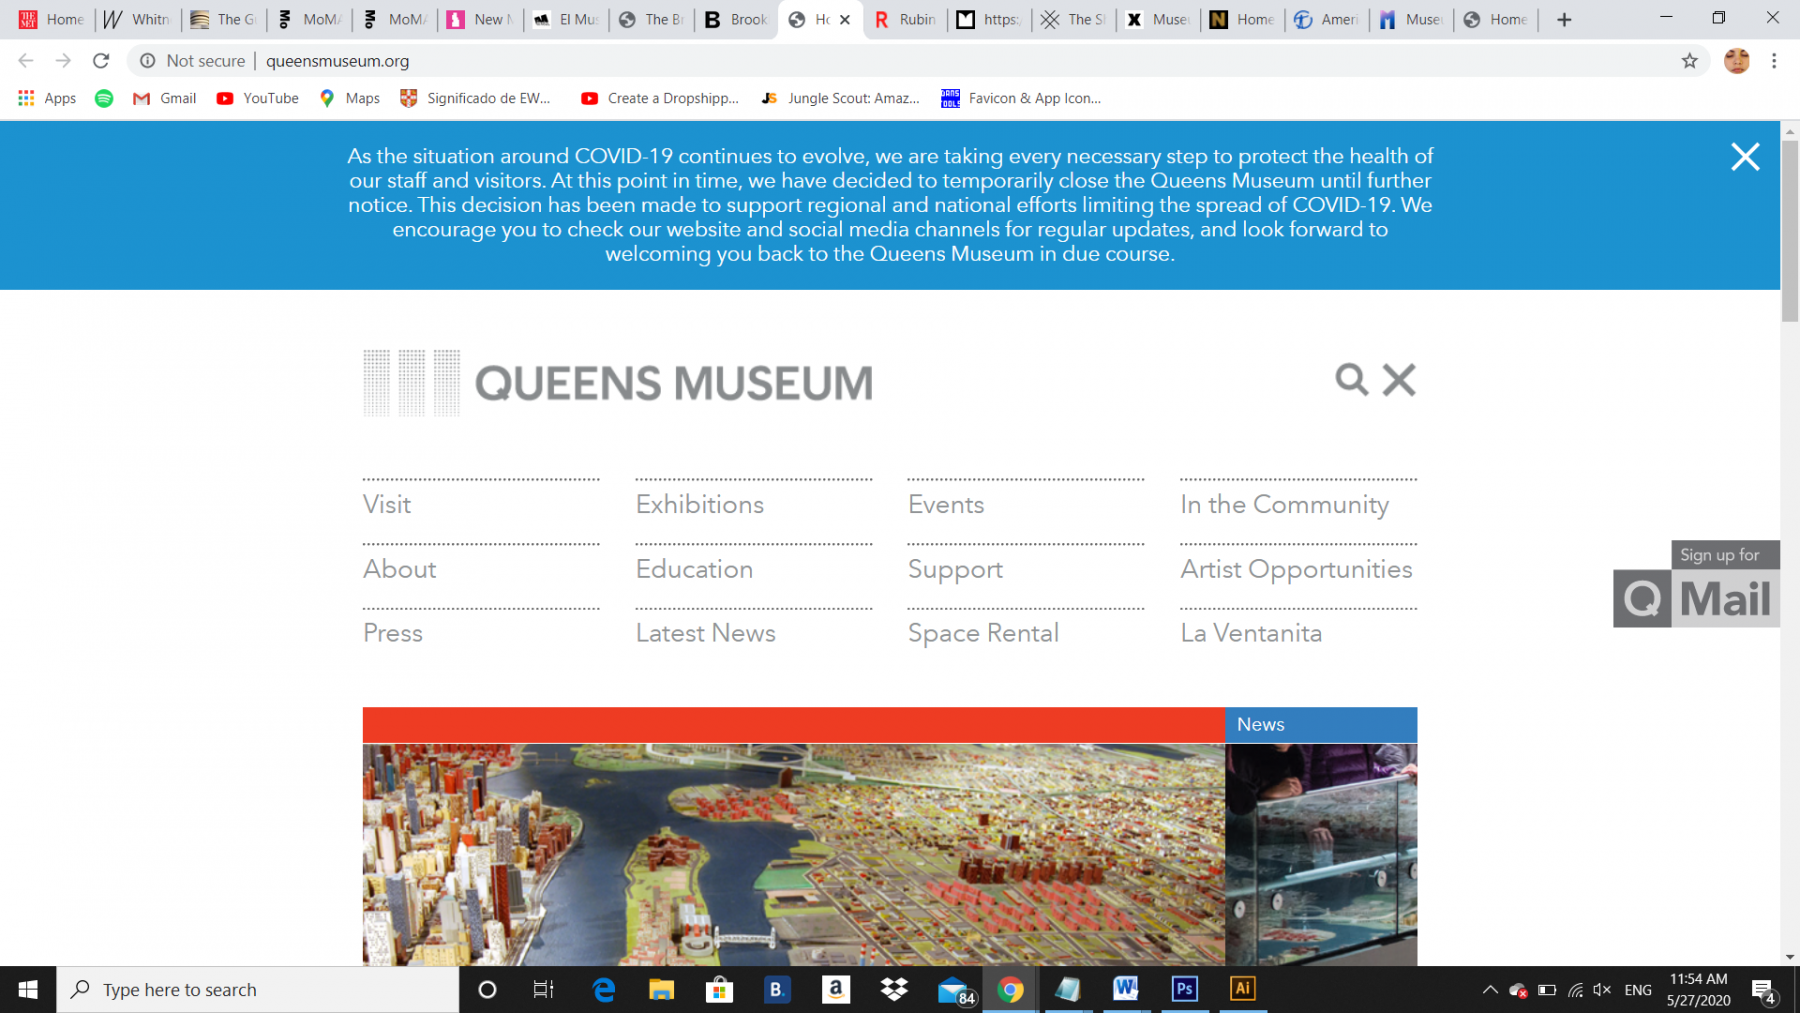 www.queensmuseum.org-2020-Photography-Naivy-Perez